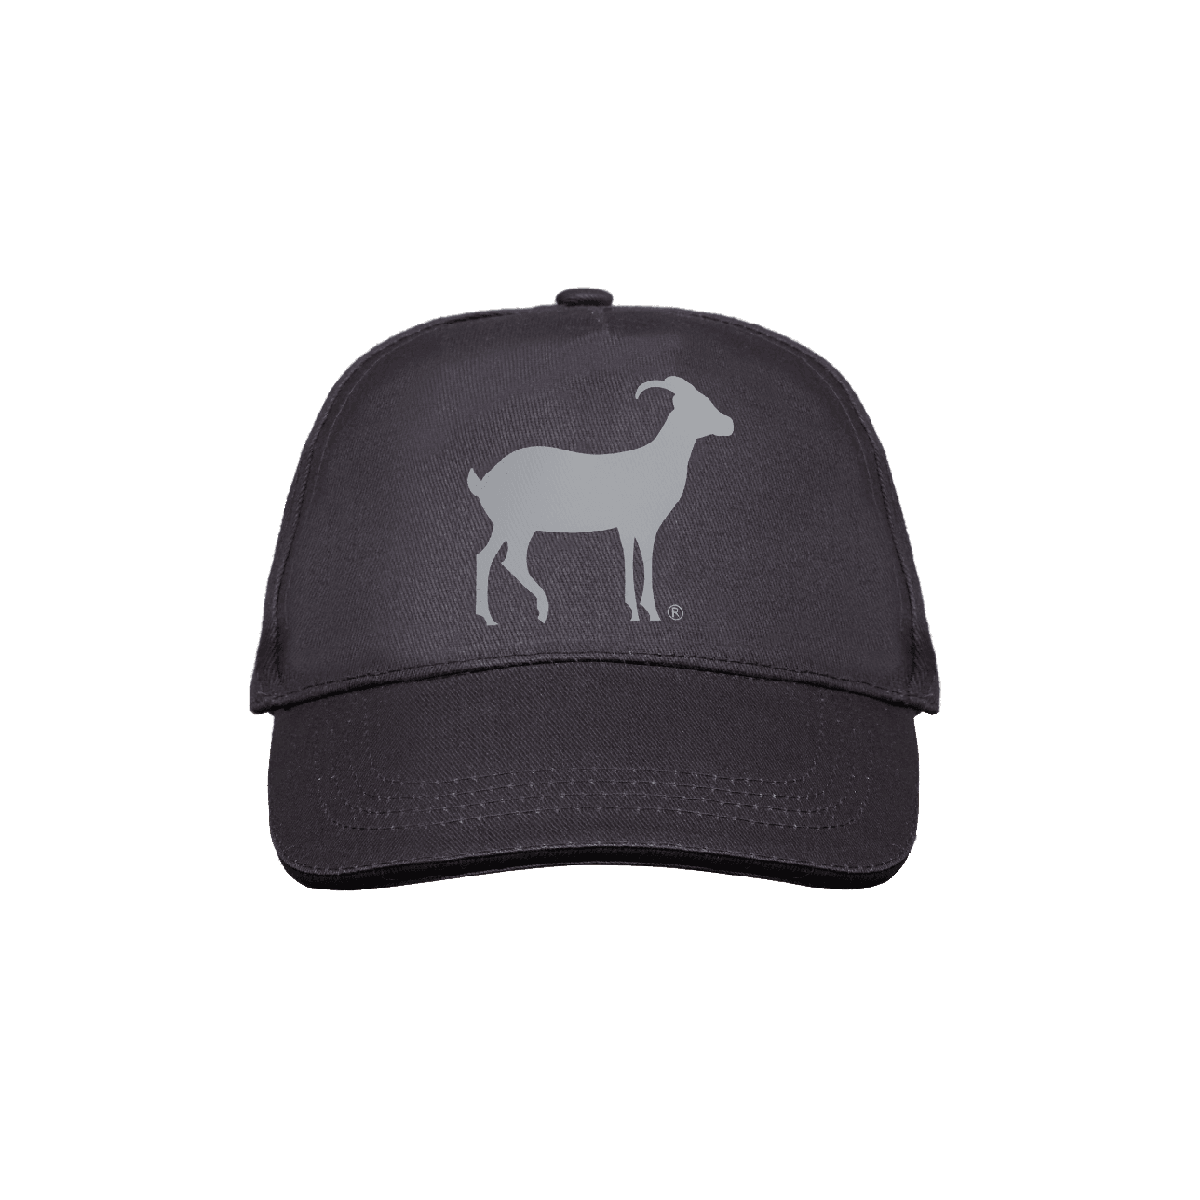 Unisex Jockey Cap With Strap